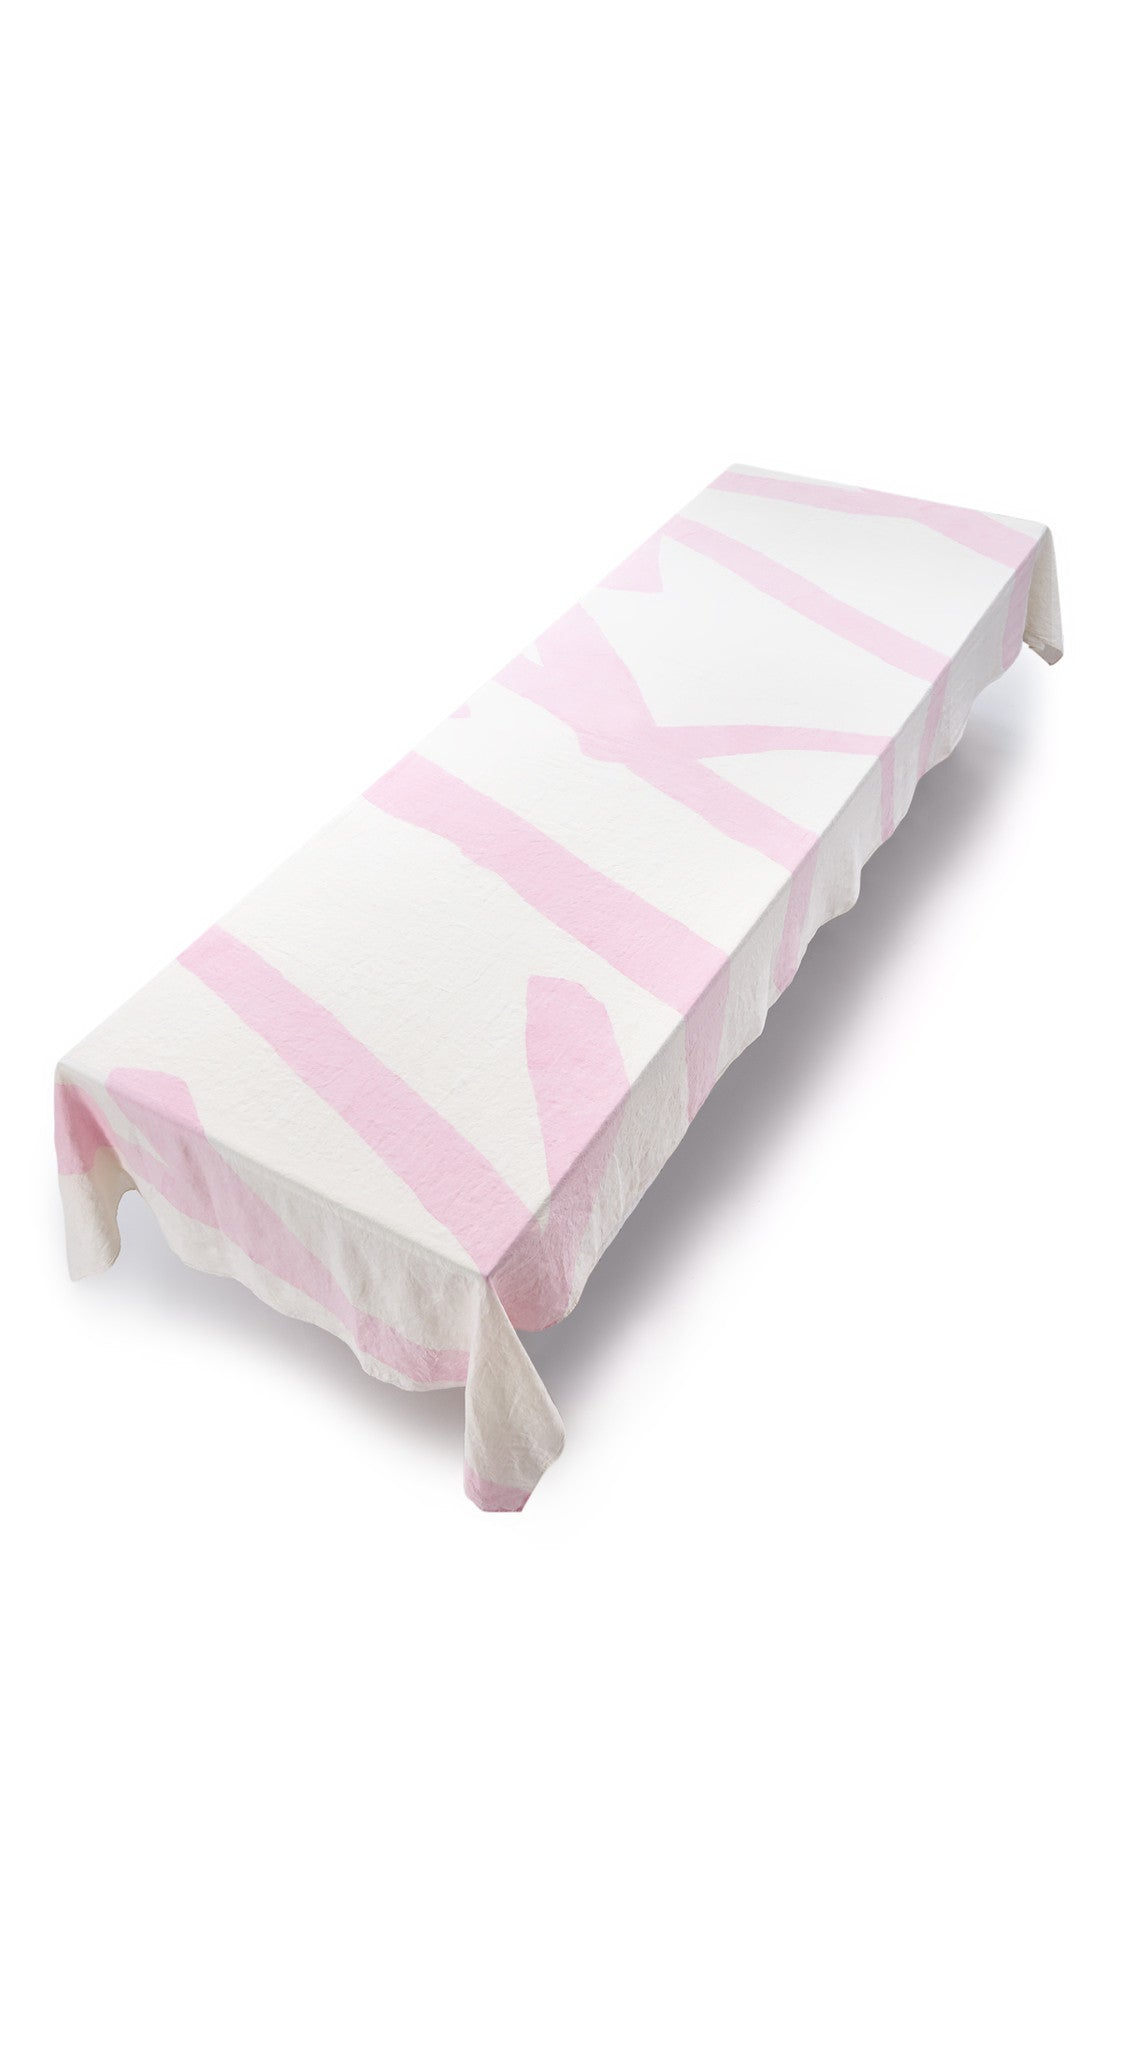 Flirty Word Linen Tablecloth in Petal Pink